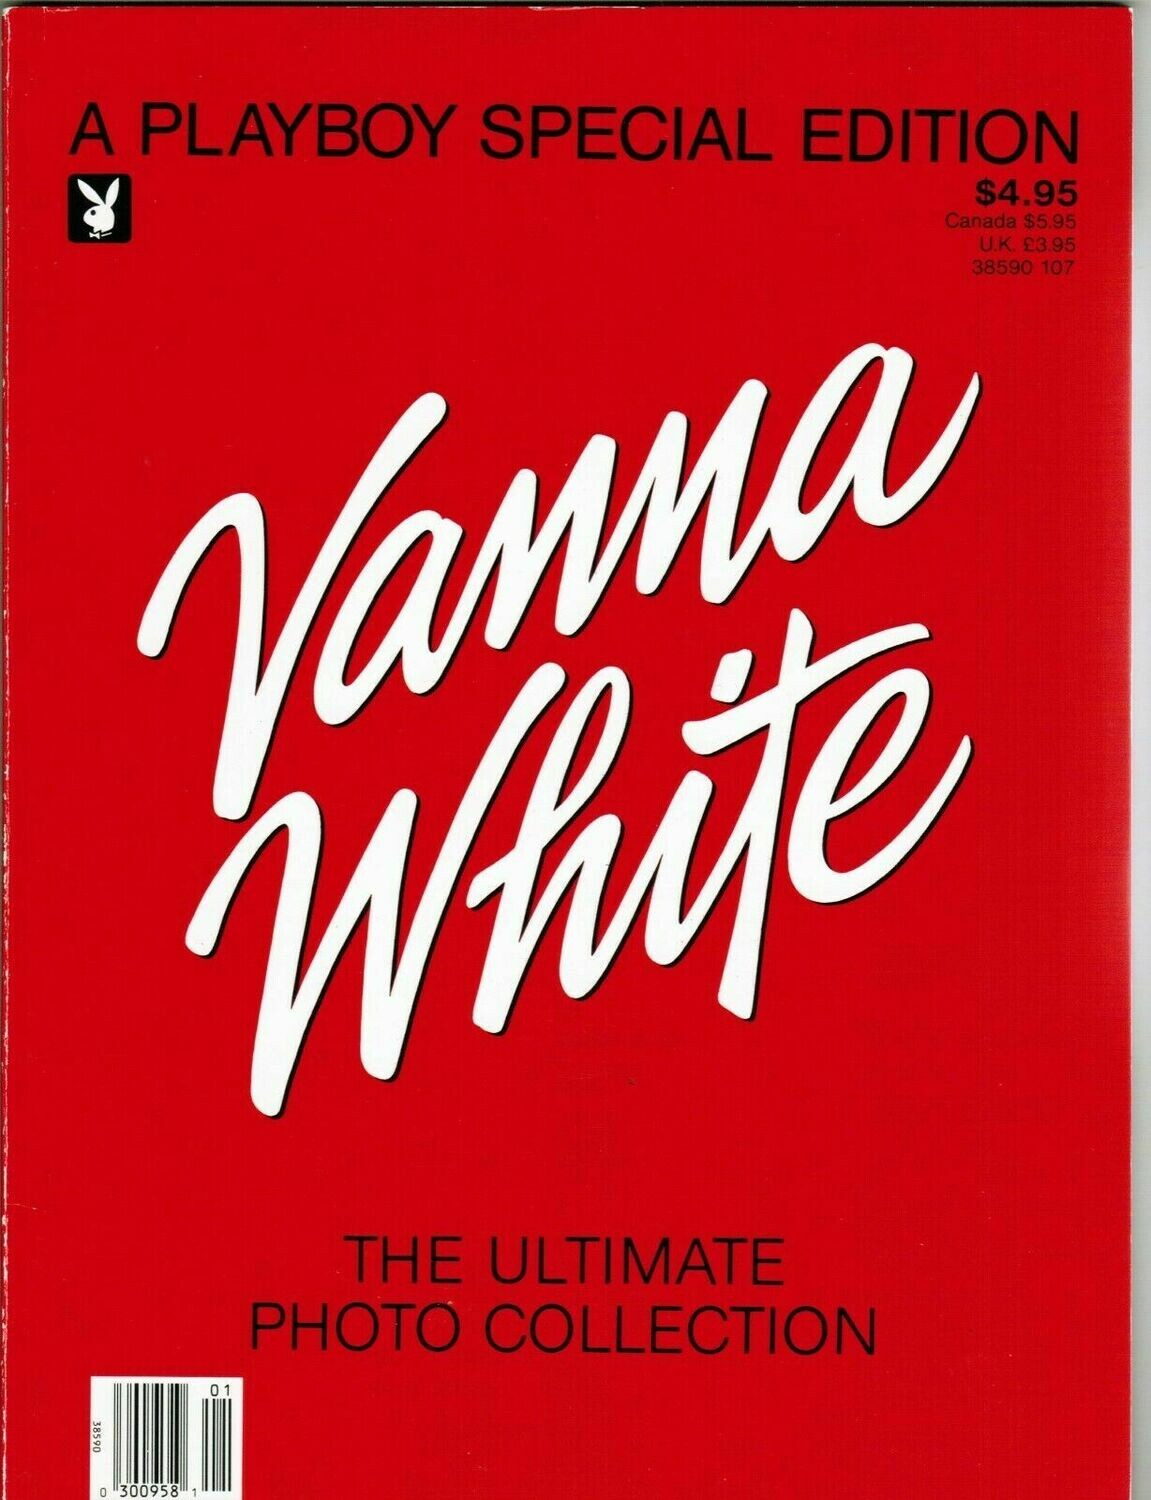 "PLAYBOY SPECIAL EDITION ""VANNA WHITE"" The Ultimate Photo Collection 1987"